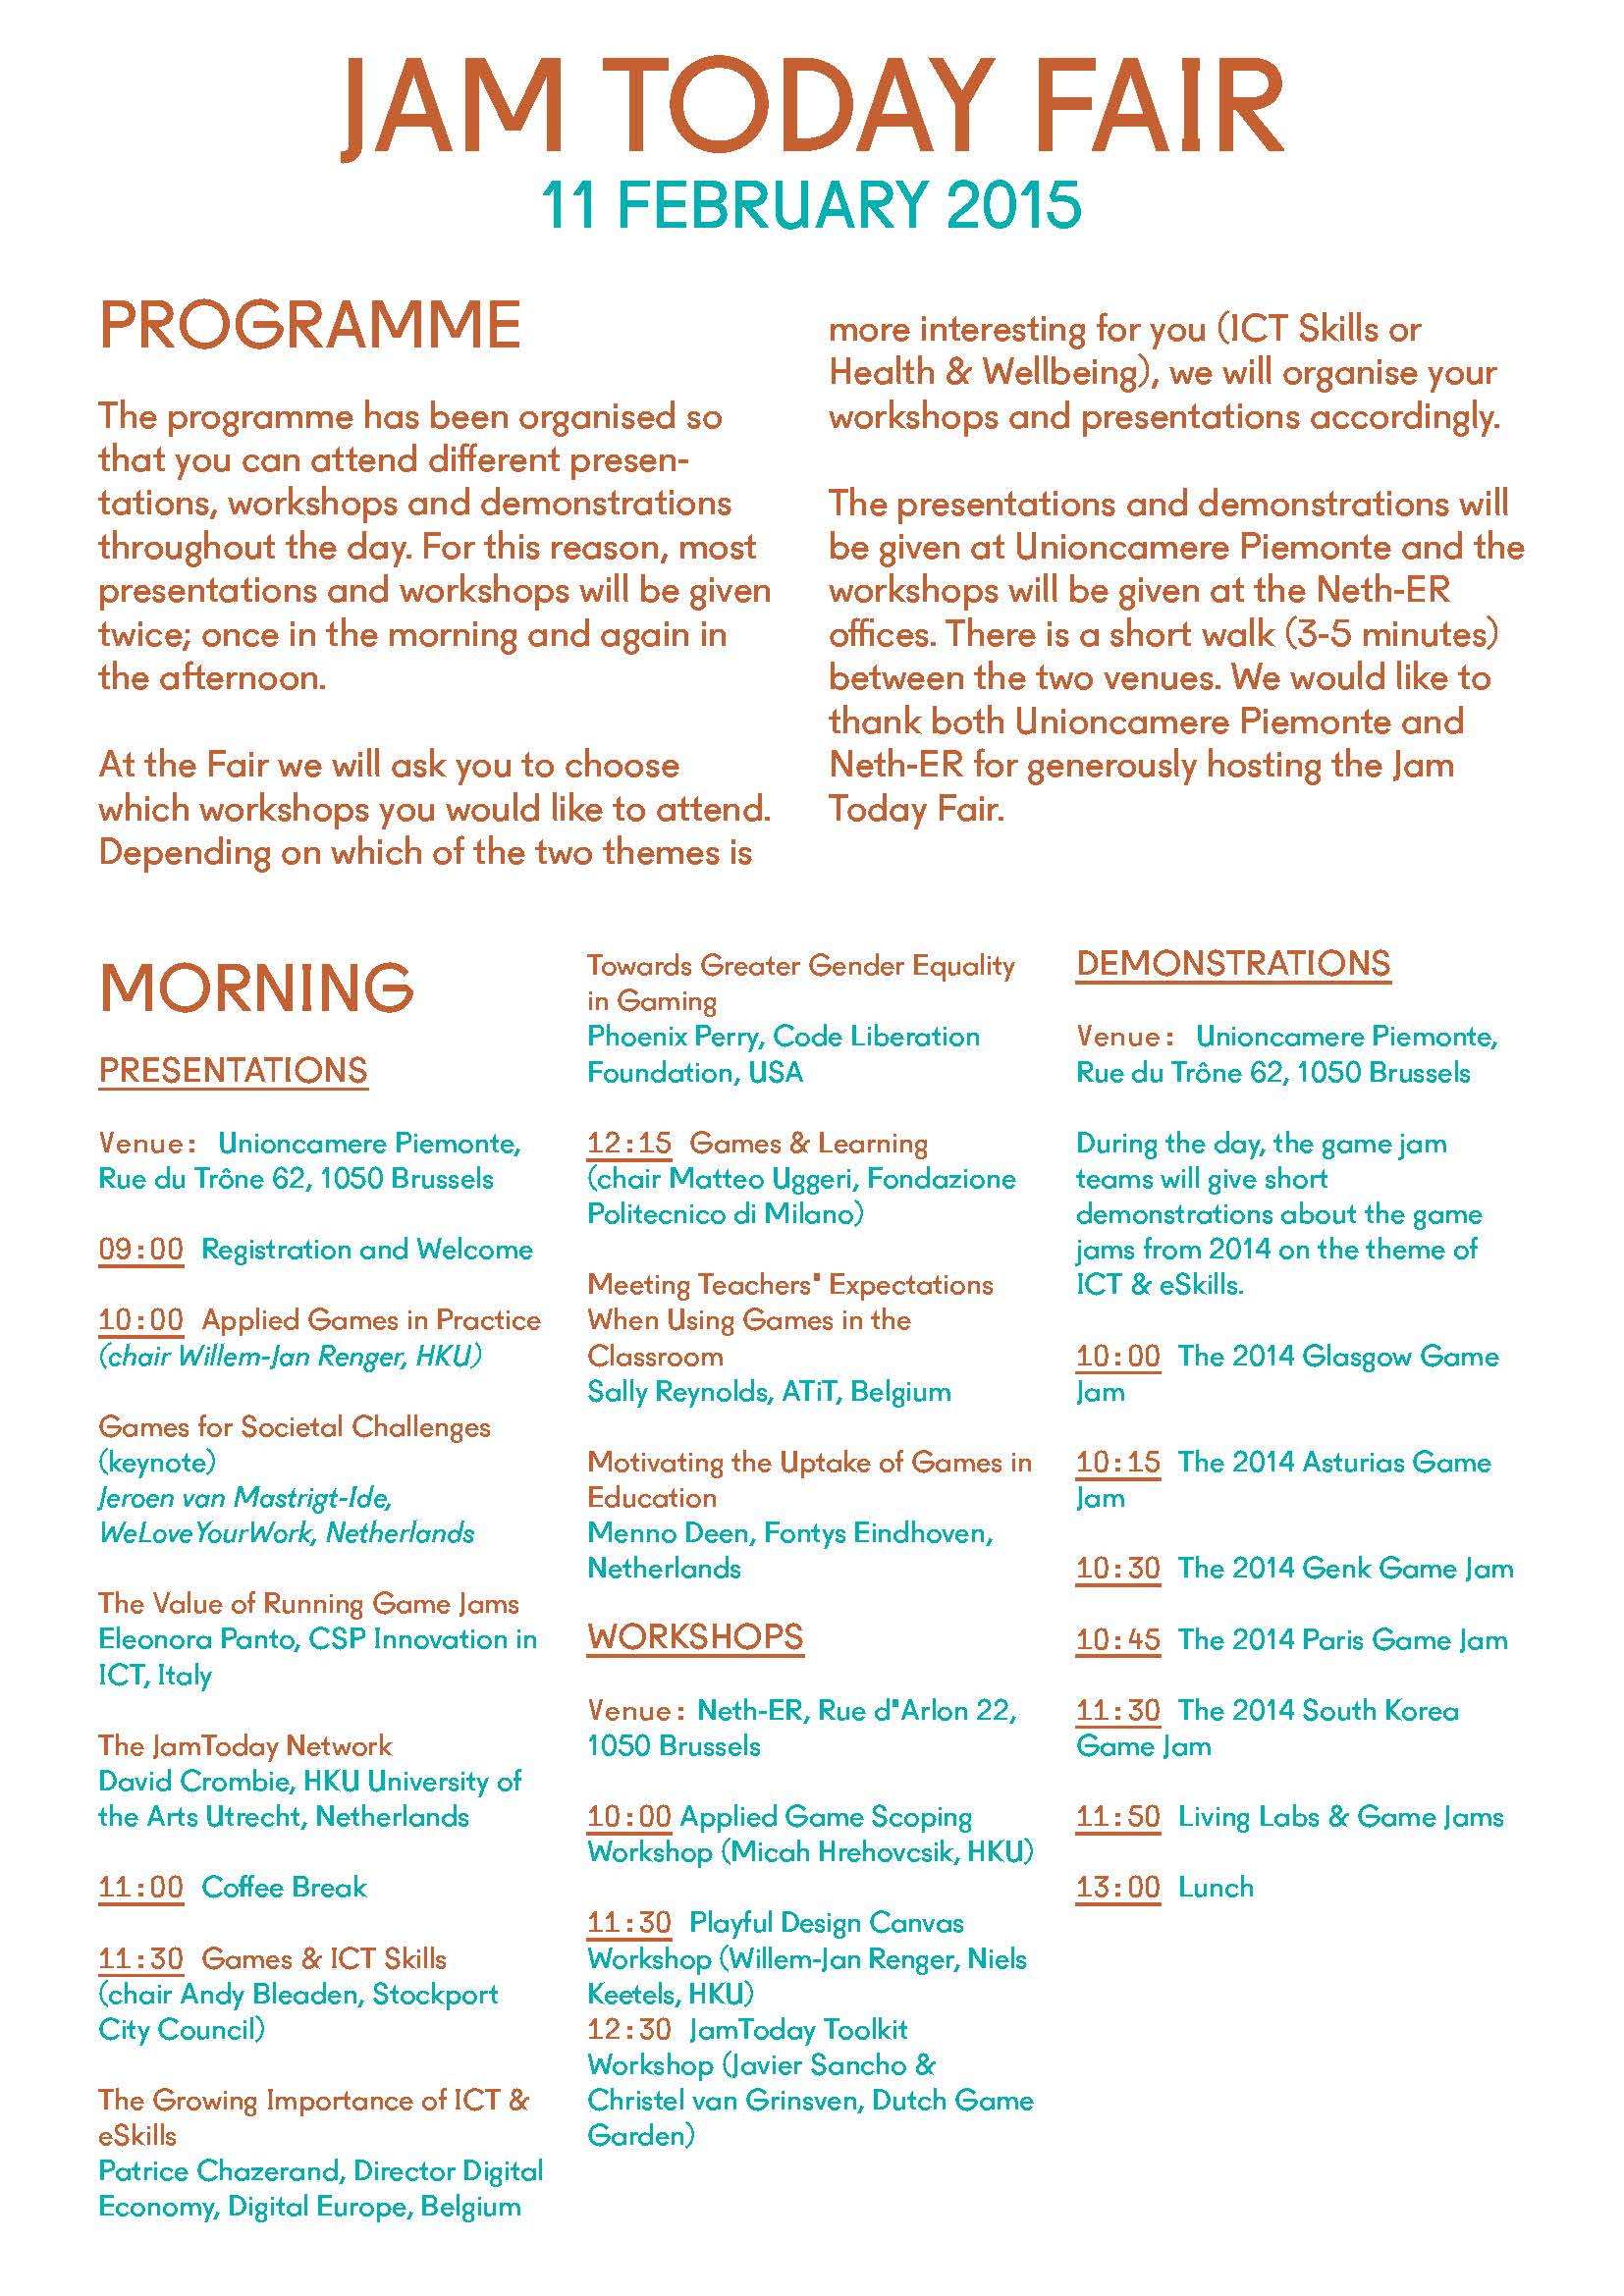 JamToday Fair 2015 Programme